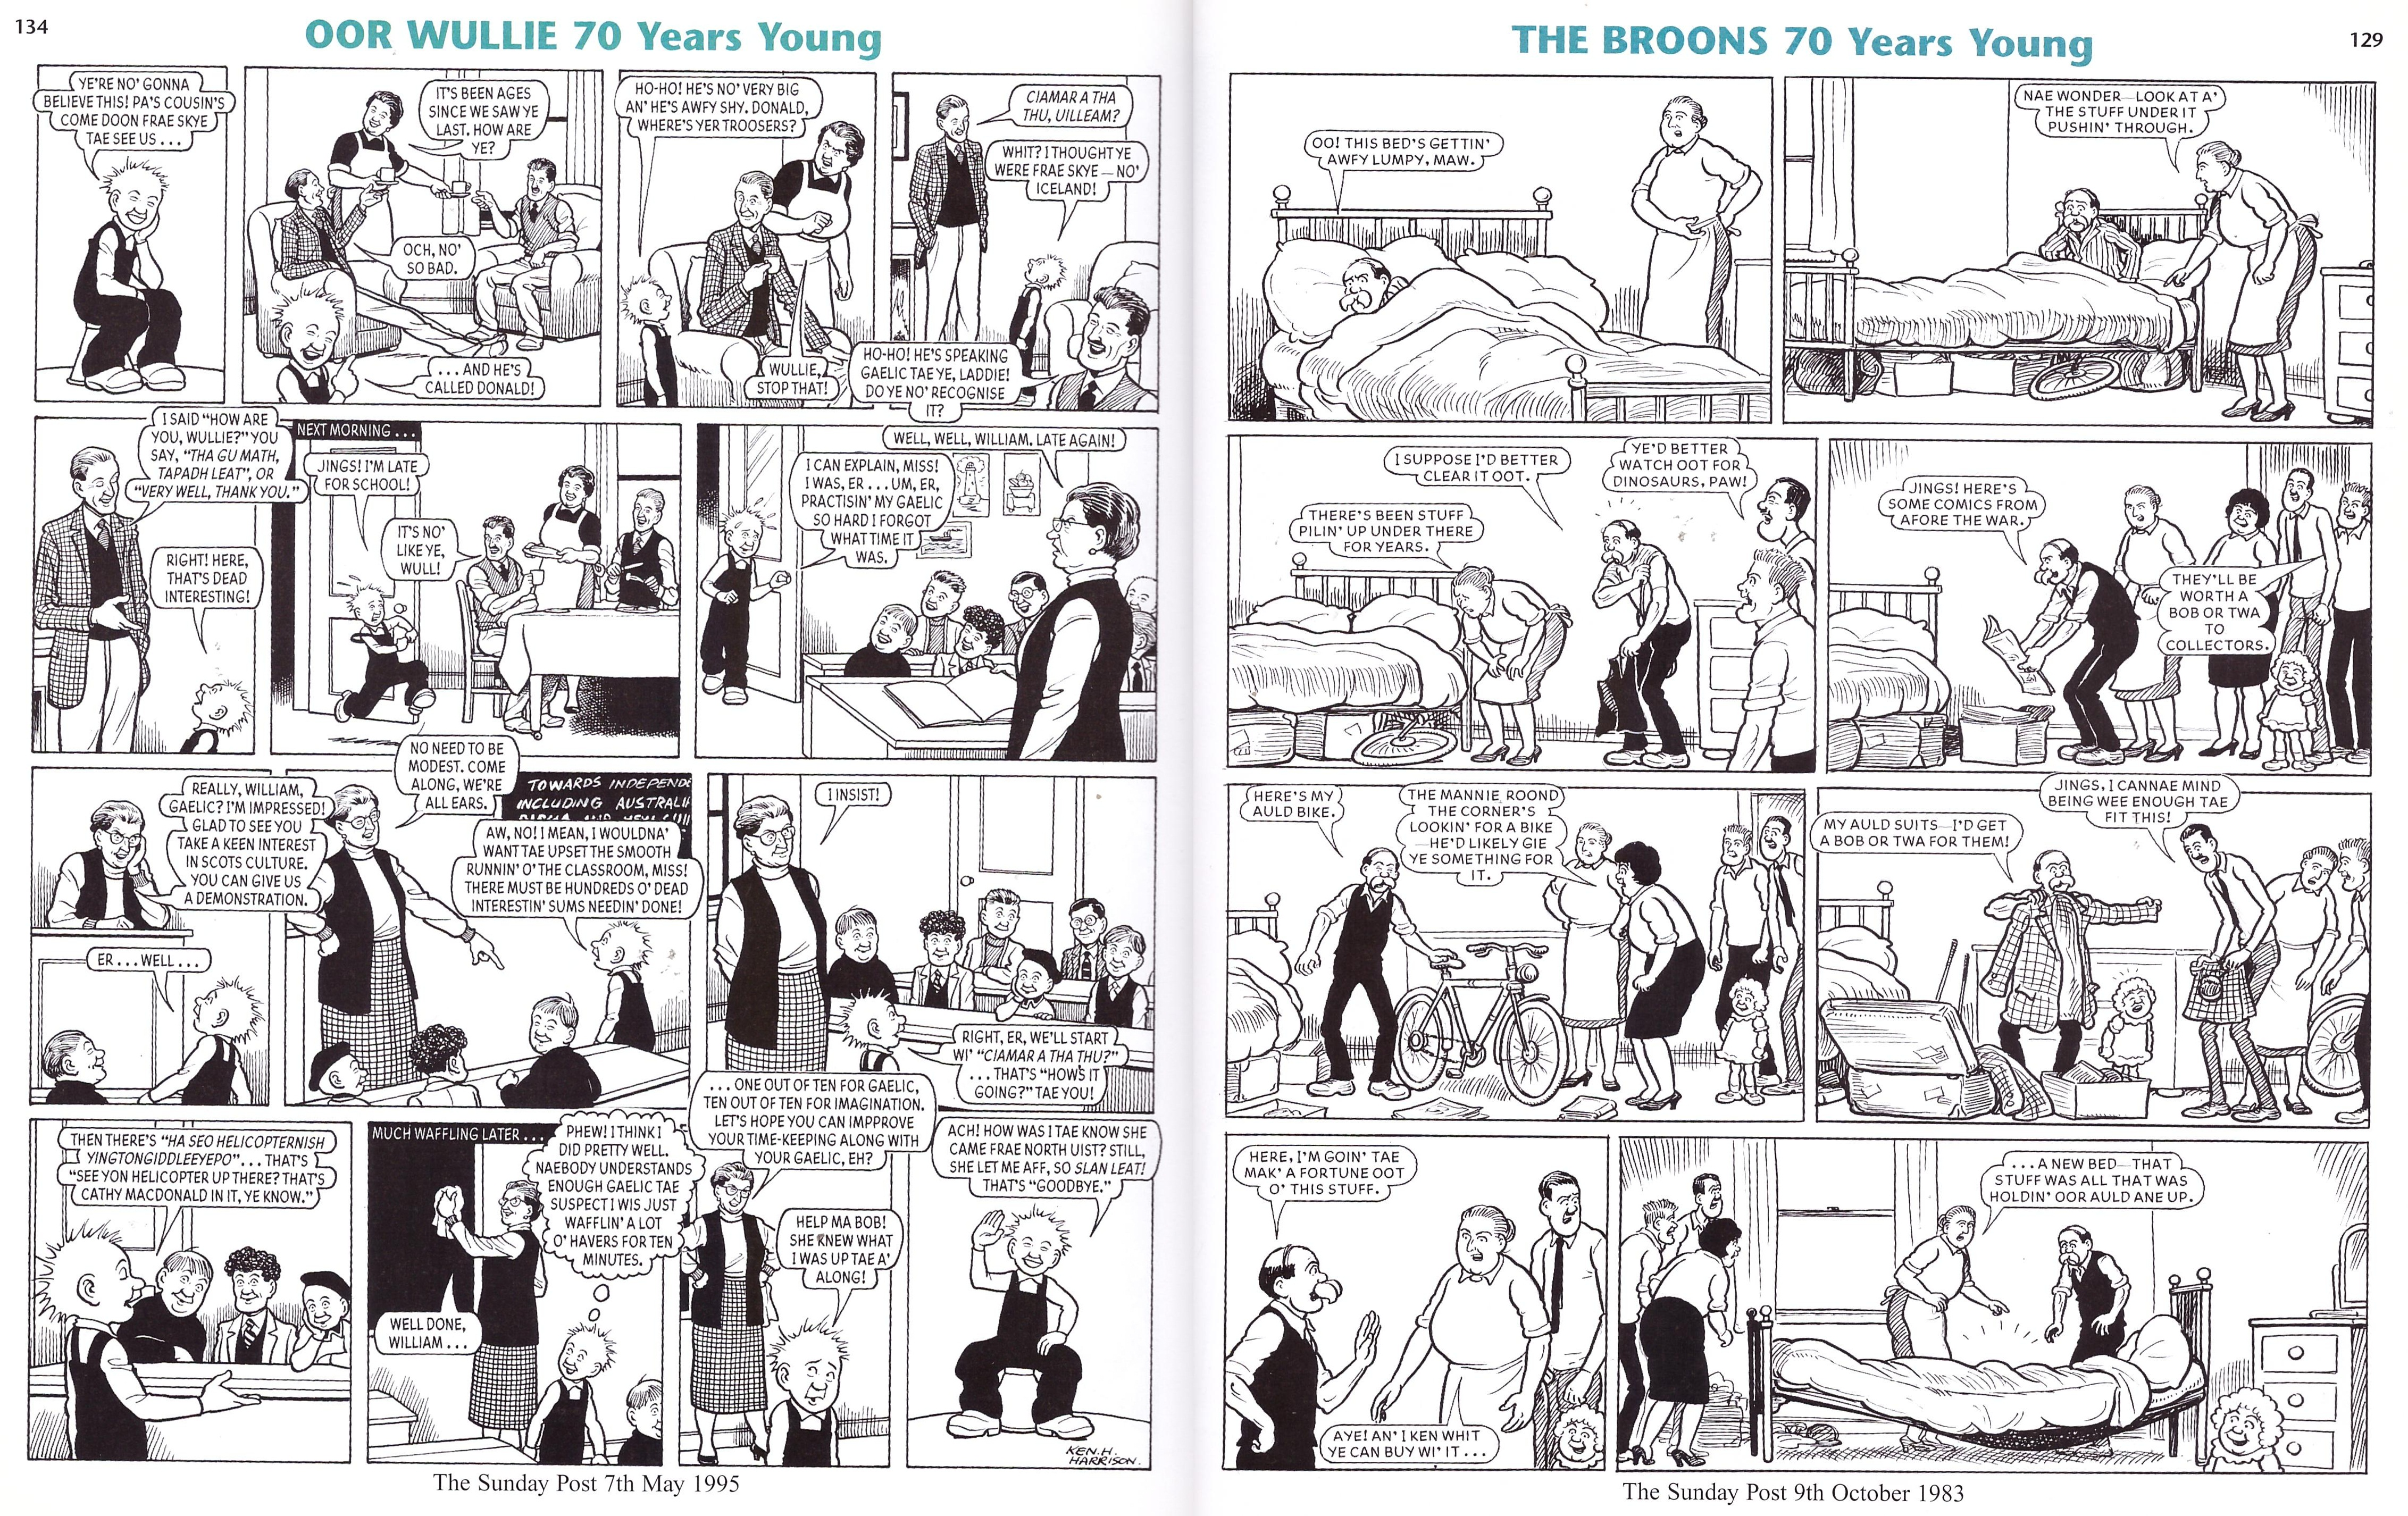 The Broons and Oor Wullie 70 Years Young review